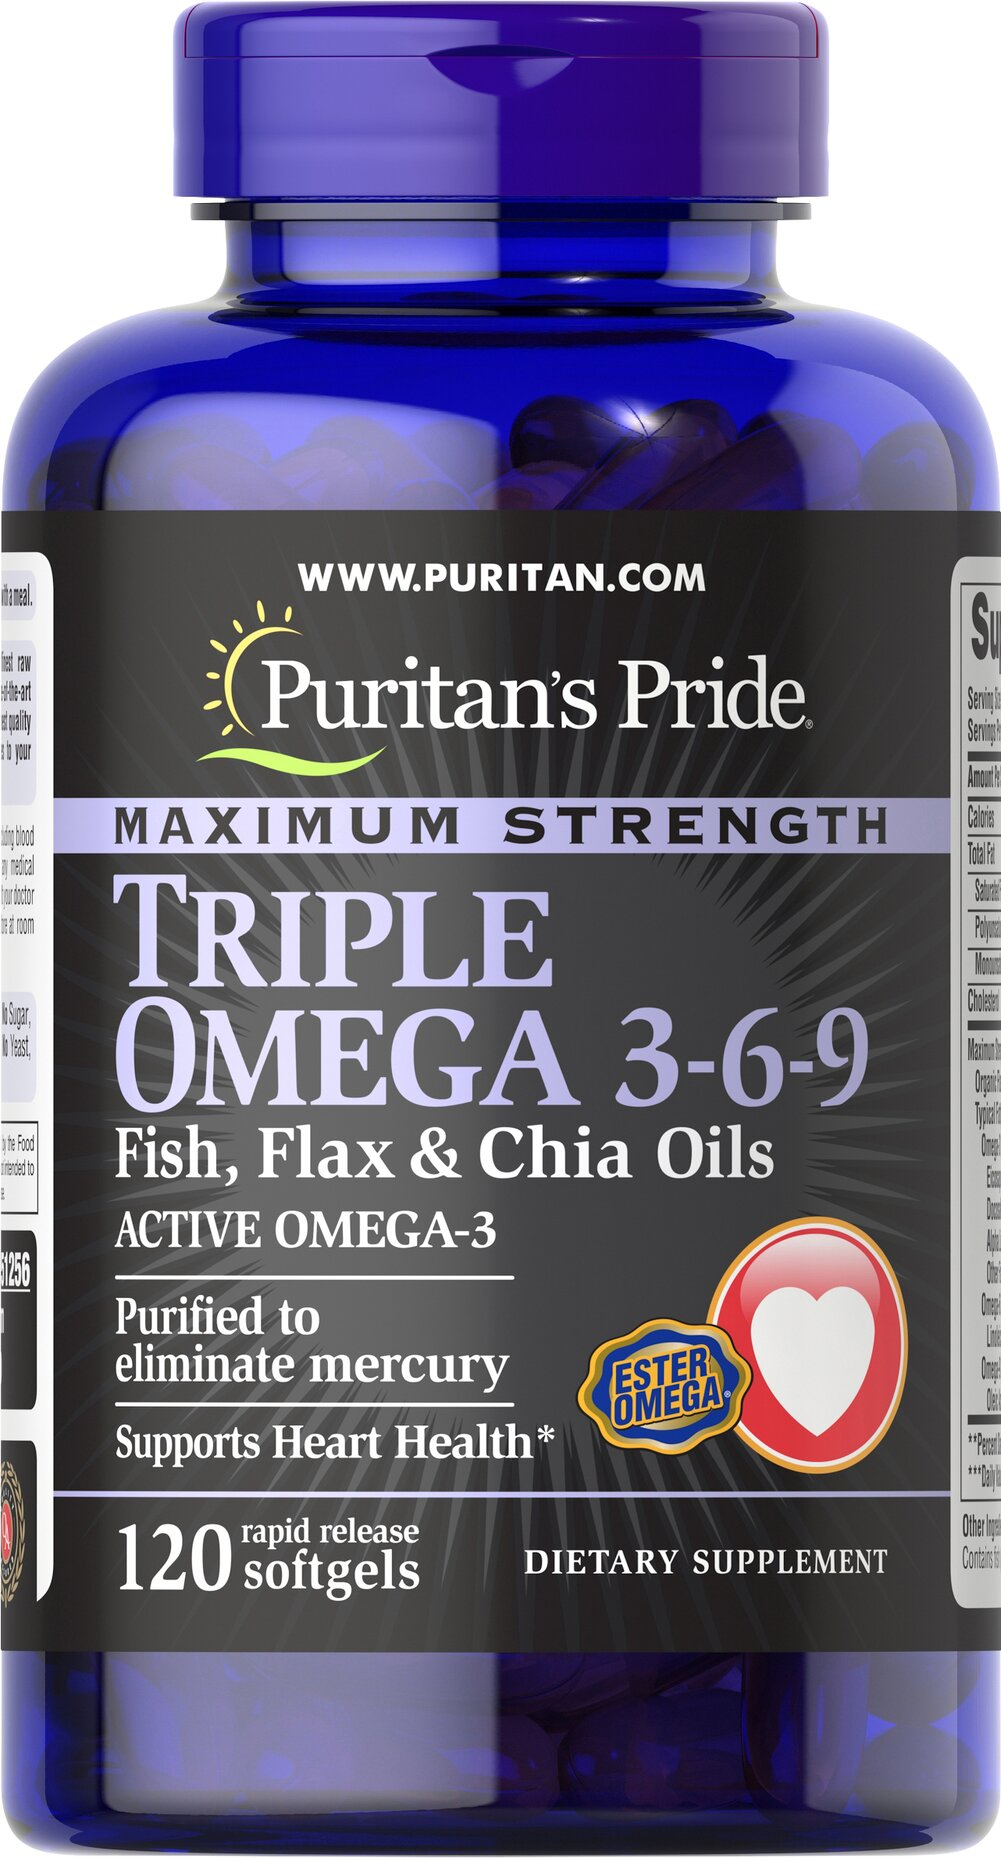 "Maximum Strength Triple Omega 3-6-9 Fish, Flax & Chia Oils <p>Contains Omega-3, Omega-6 and Omega-9 – the ""good"" fats important for cellular, heart and metabolic health.**  </p><p>TRIPLE OMEGA 3-6-9 Fish and Flax Oils contain a proprietary blend of essential oils, including Flaxseed Oil,  Ester Omega Fish Oil and Chia. </p><p>Supports Heart Health.* </p><strong></strong><p><strong>Purified to eliminate mercury.</strong></p&"